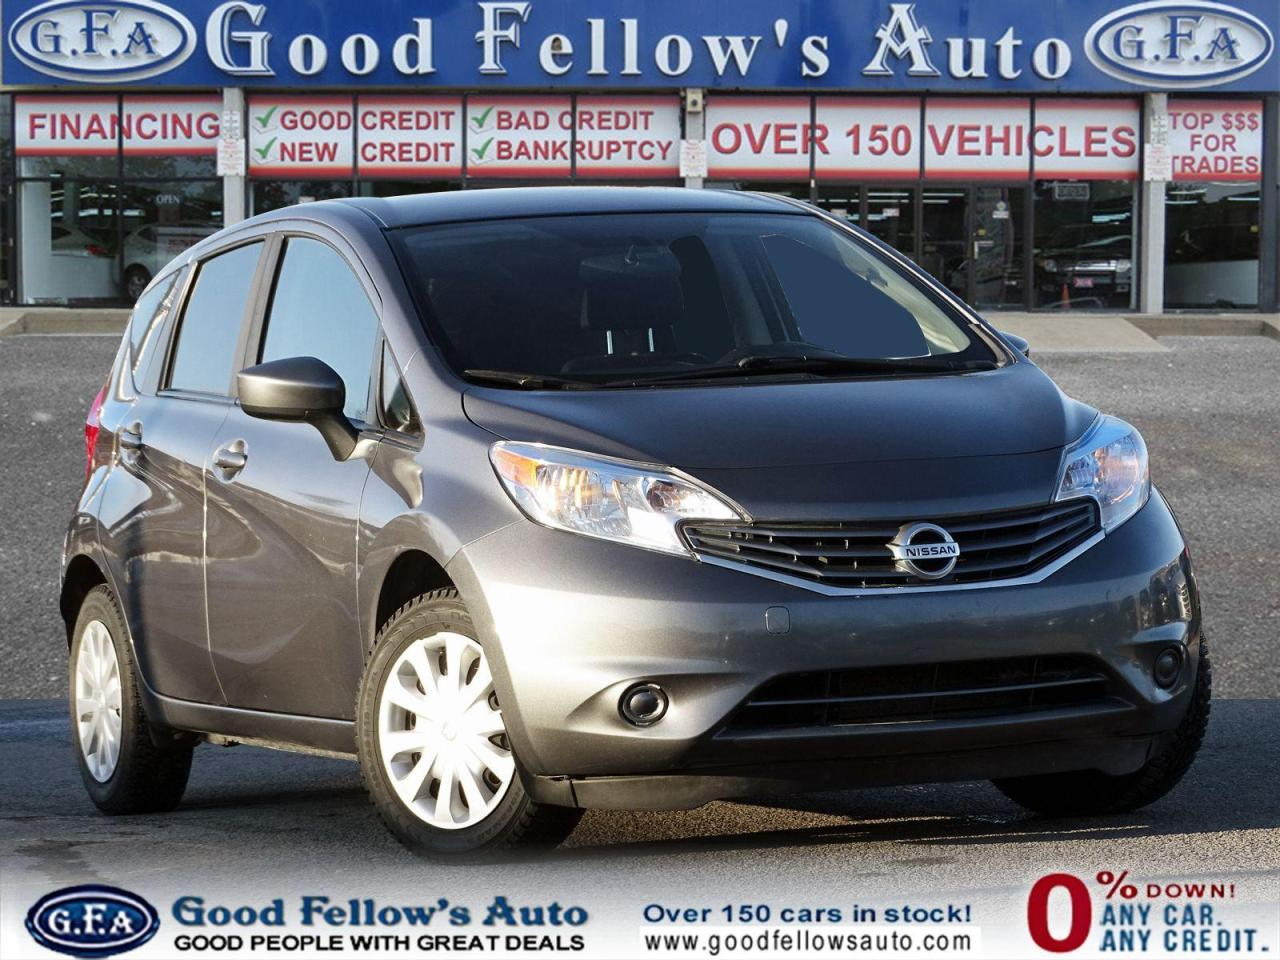 used 2016 Nissan Versa Note car, priced at $9,400